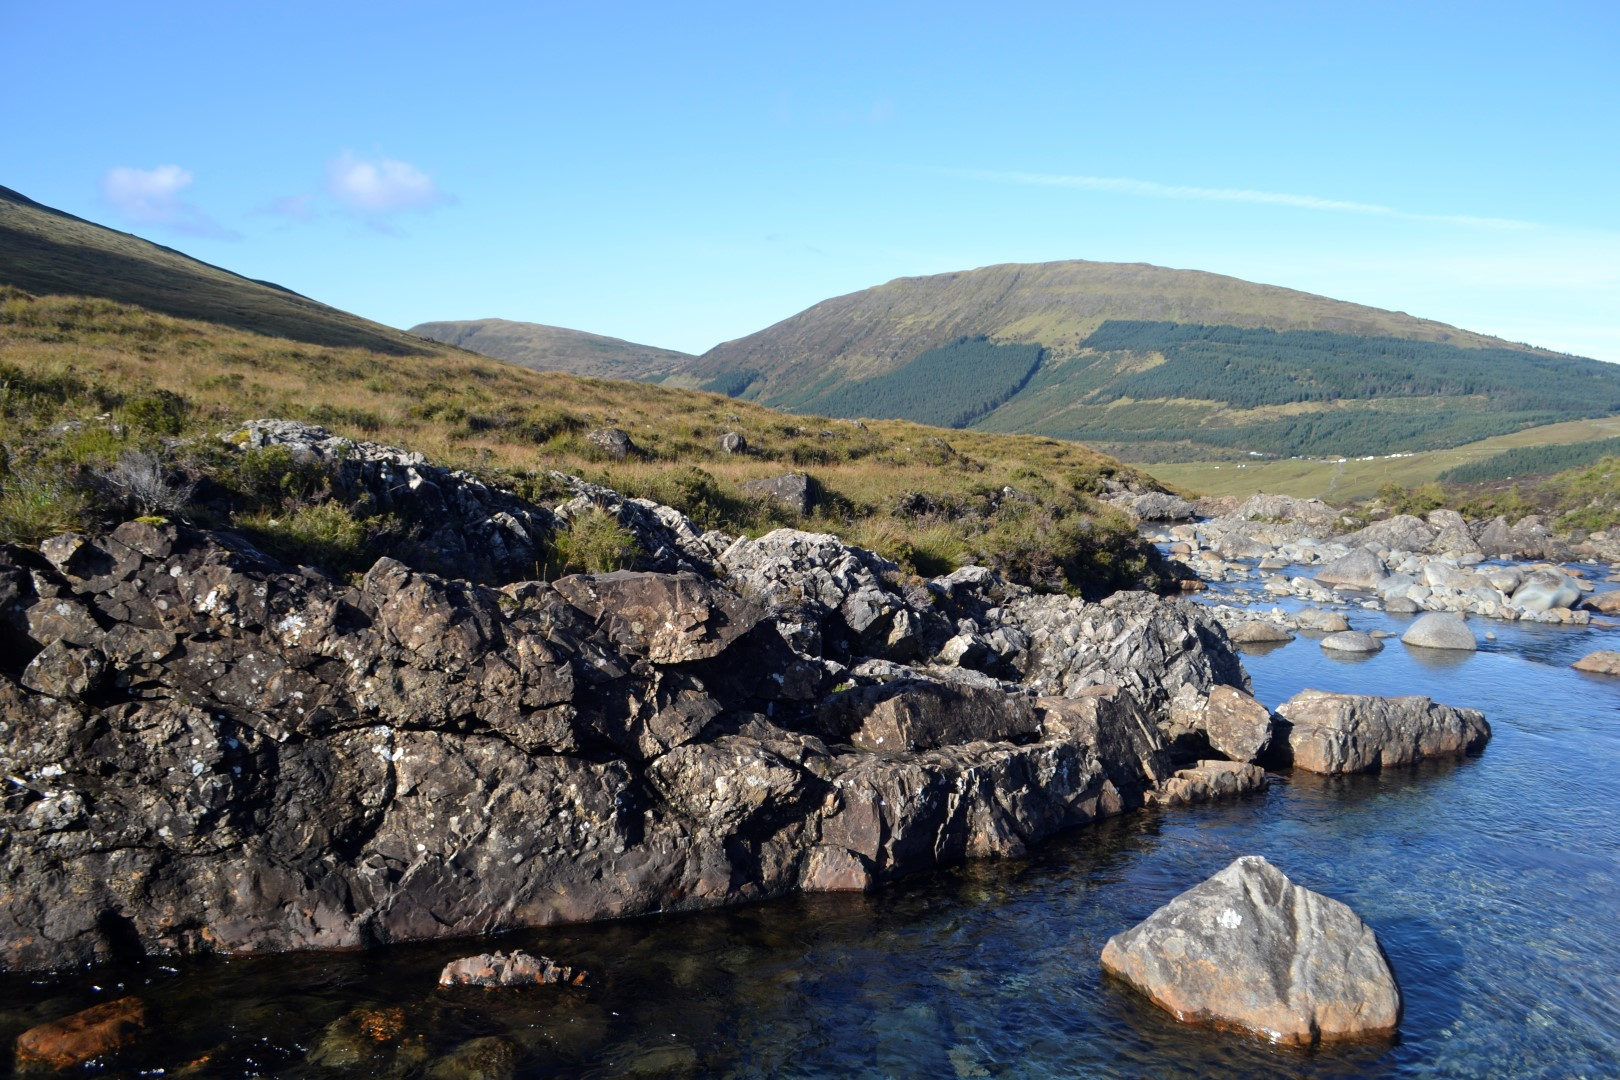 The Fairy Pools, as I saw them